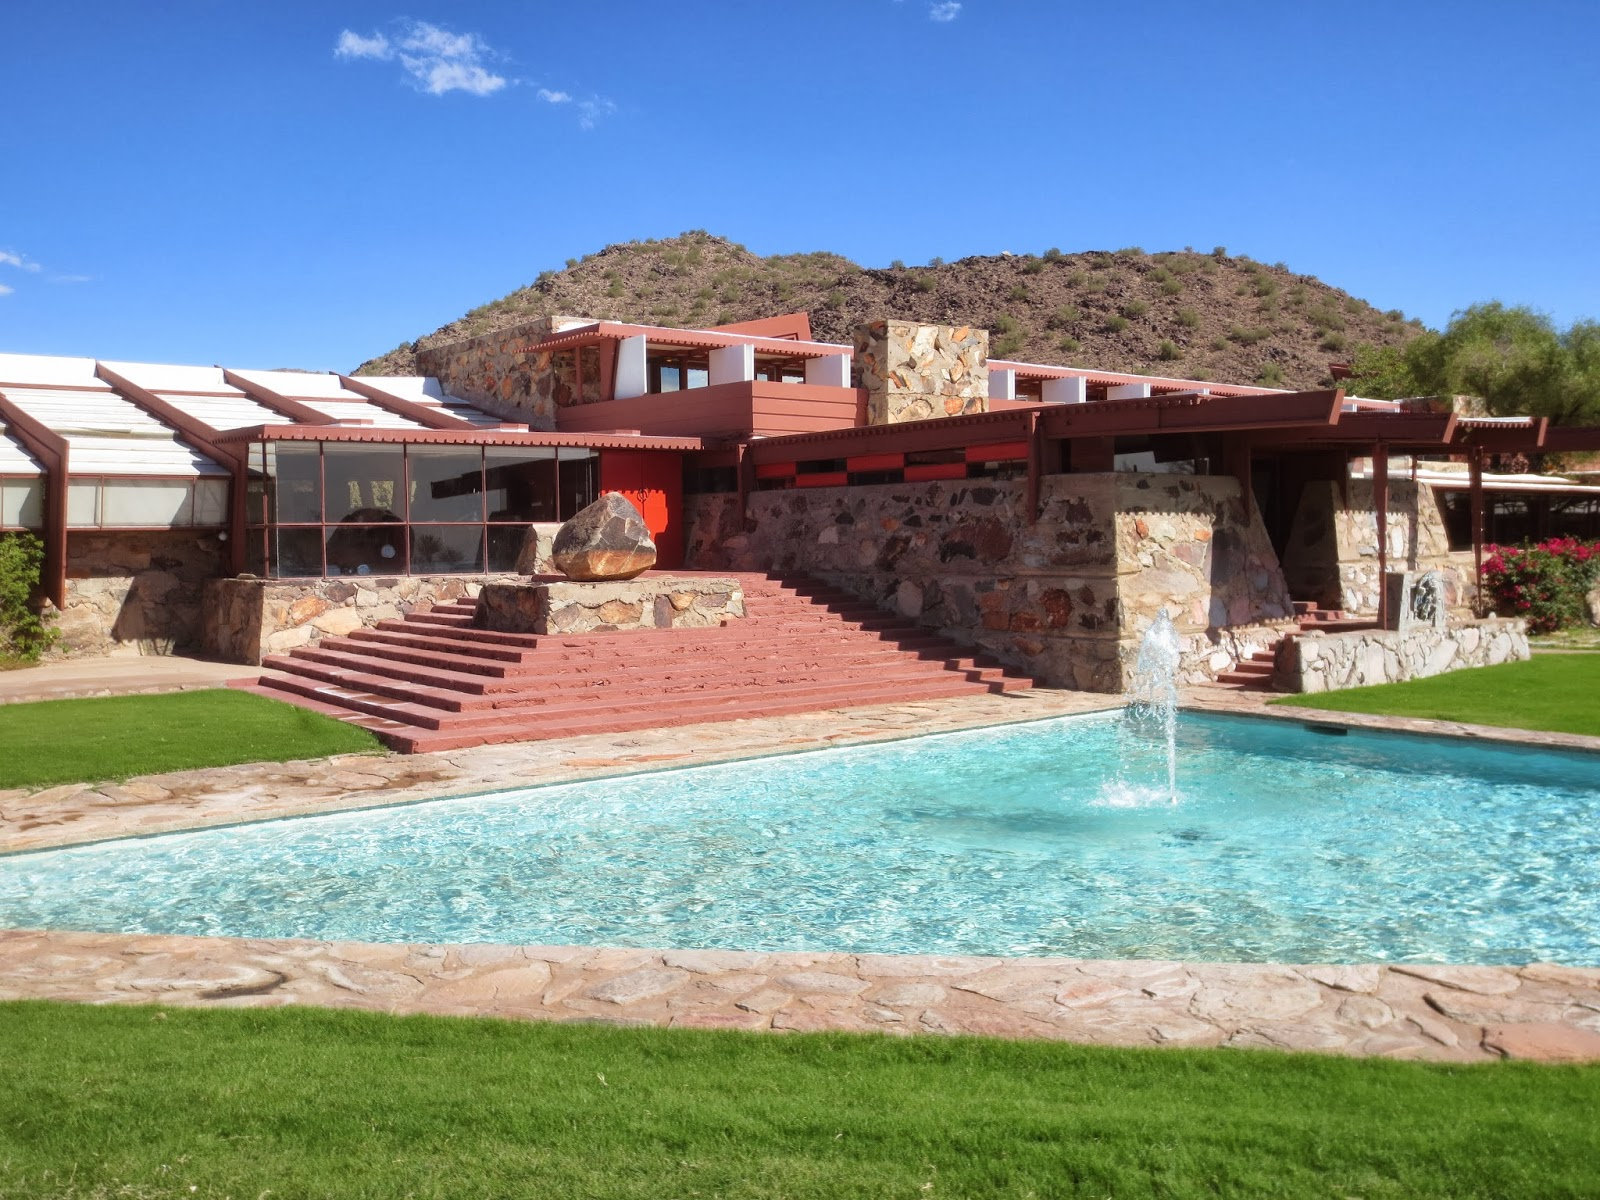 the work of frank lloyd wright in building taliesin west Tour the site and stop in the store featuring wright's work and more  frank  lloyd wright began building his desert masterpiece taliesin west in 1937 as his .